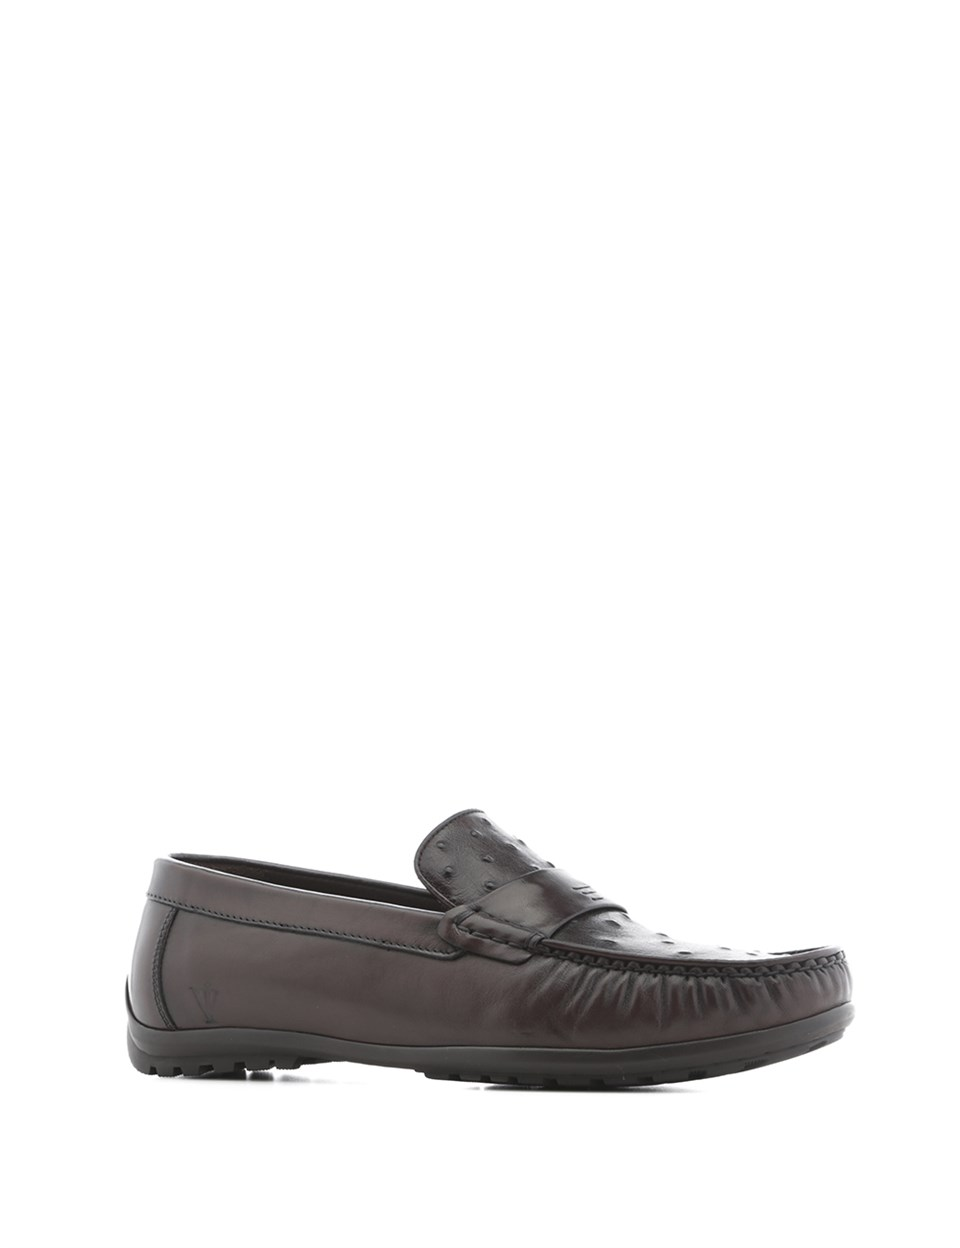 ILVi-Genuine Leather Handmade Keytlin Men's Moccasin Brown Darkened Men Shoes 2020 Spring Summer (Made in Turkey)